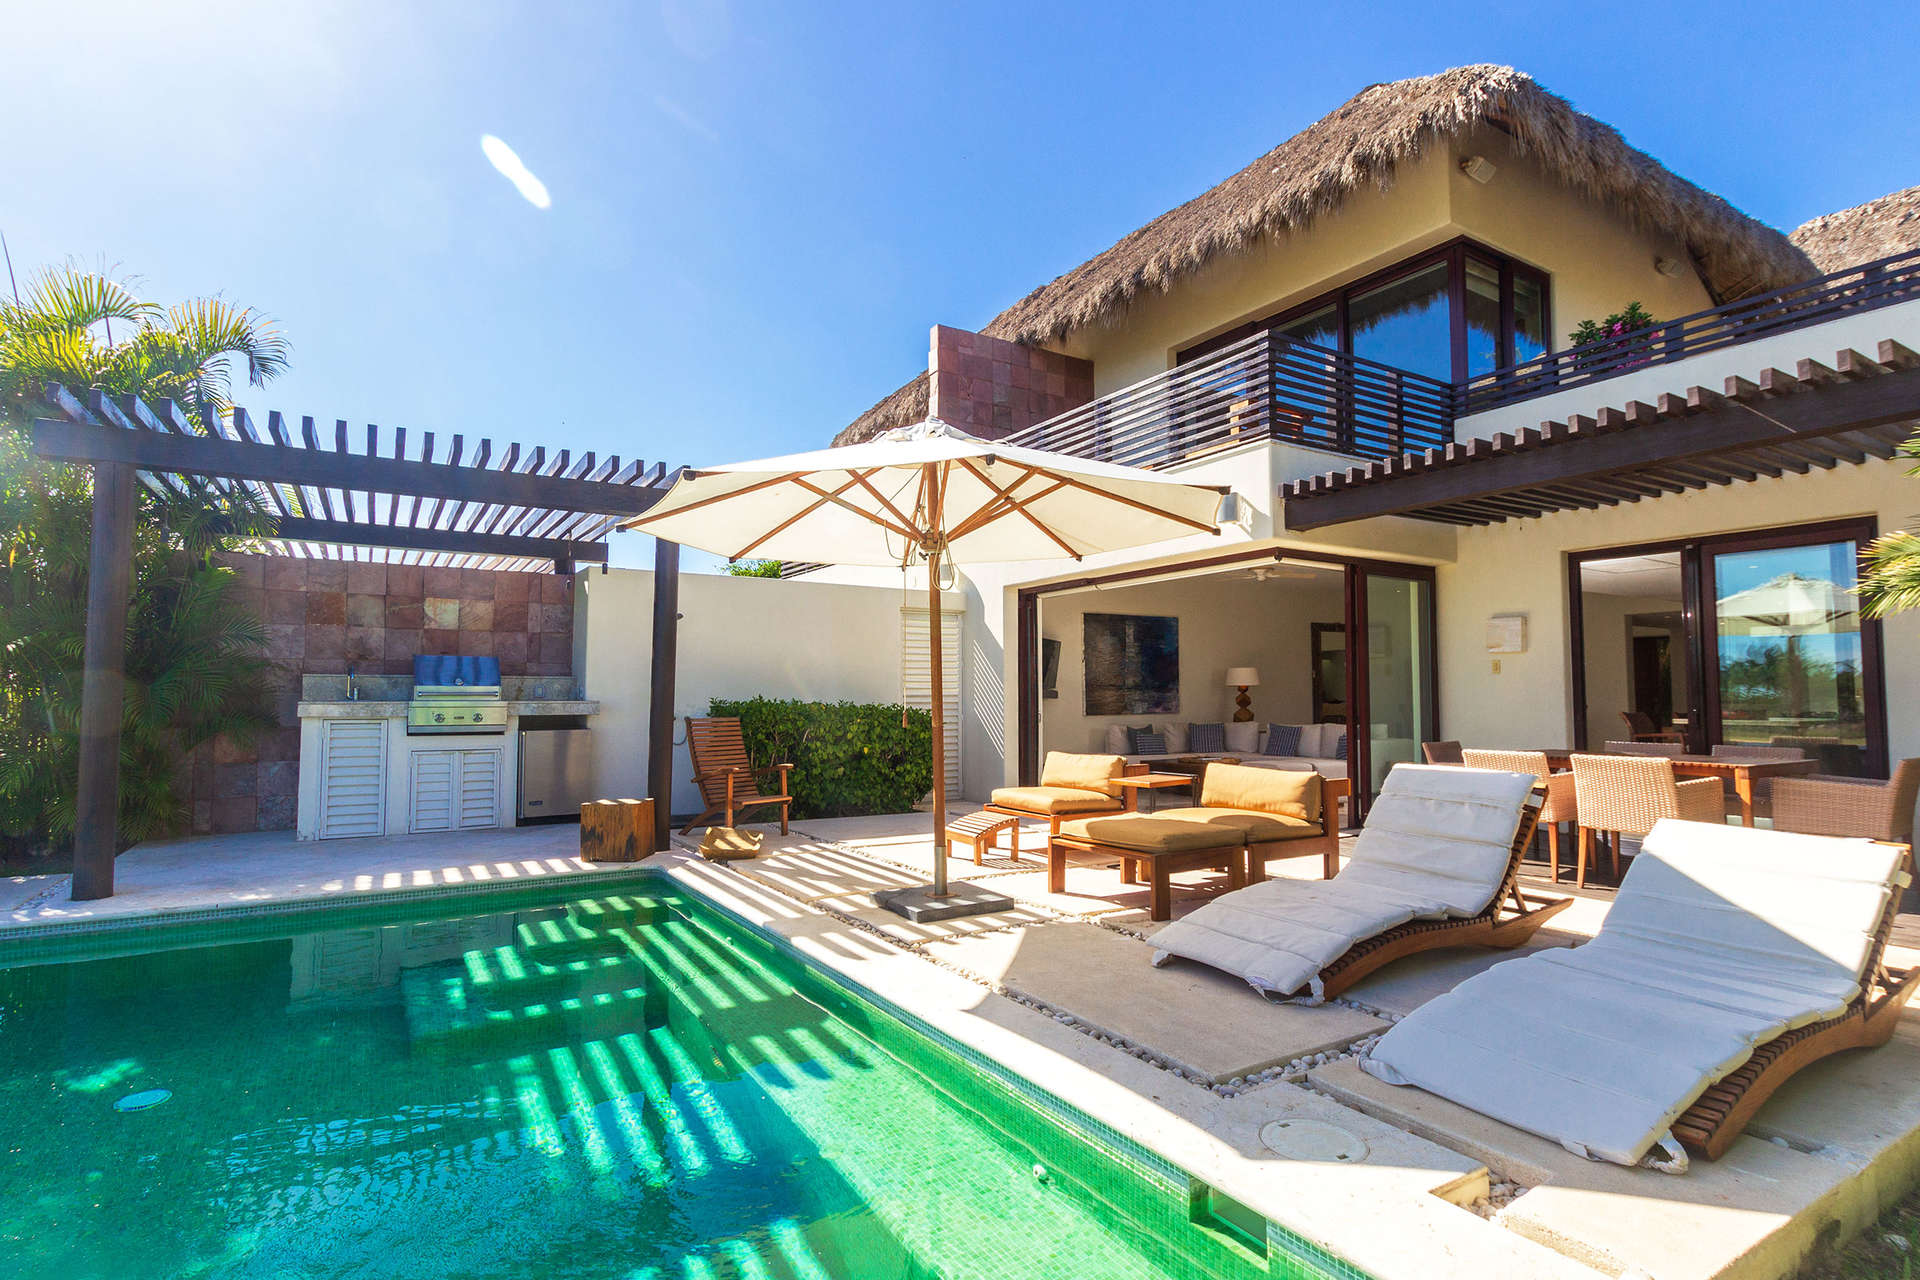 Luxury vacation rentals mexico - Punta mita - Porta fortuna - No location 4 - Villa Rubi - Image 1/18